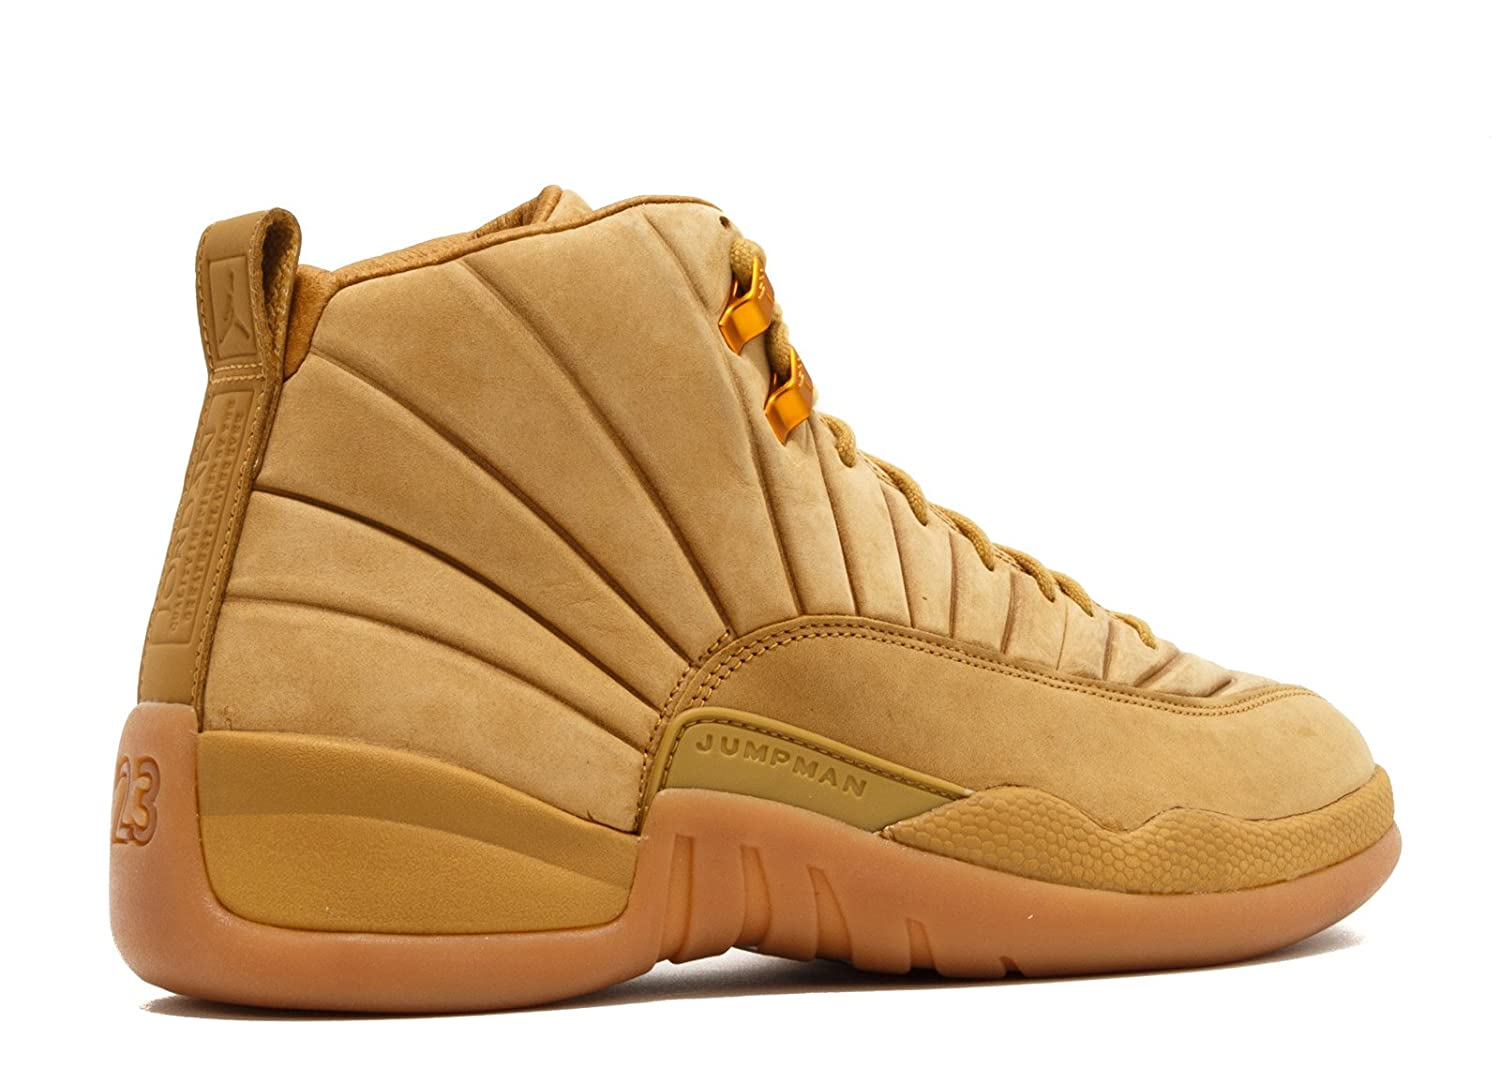 innovative design 3e0cd 14b8f Jordan 2017 Nike Air XII Public School NYC Wheat Tan AA1233 ...